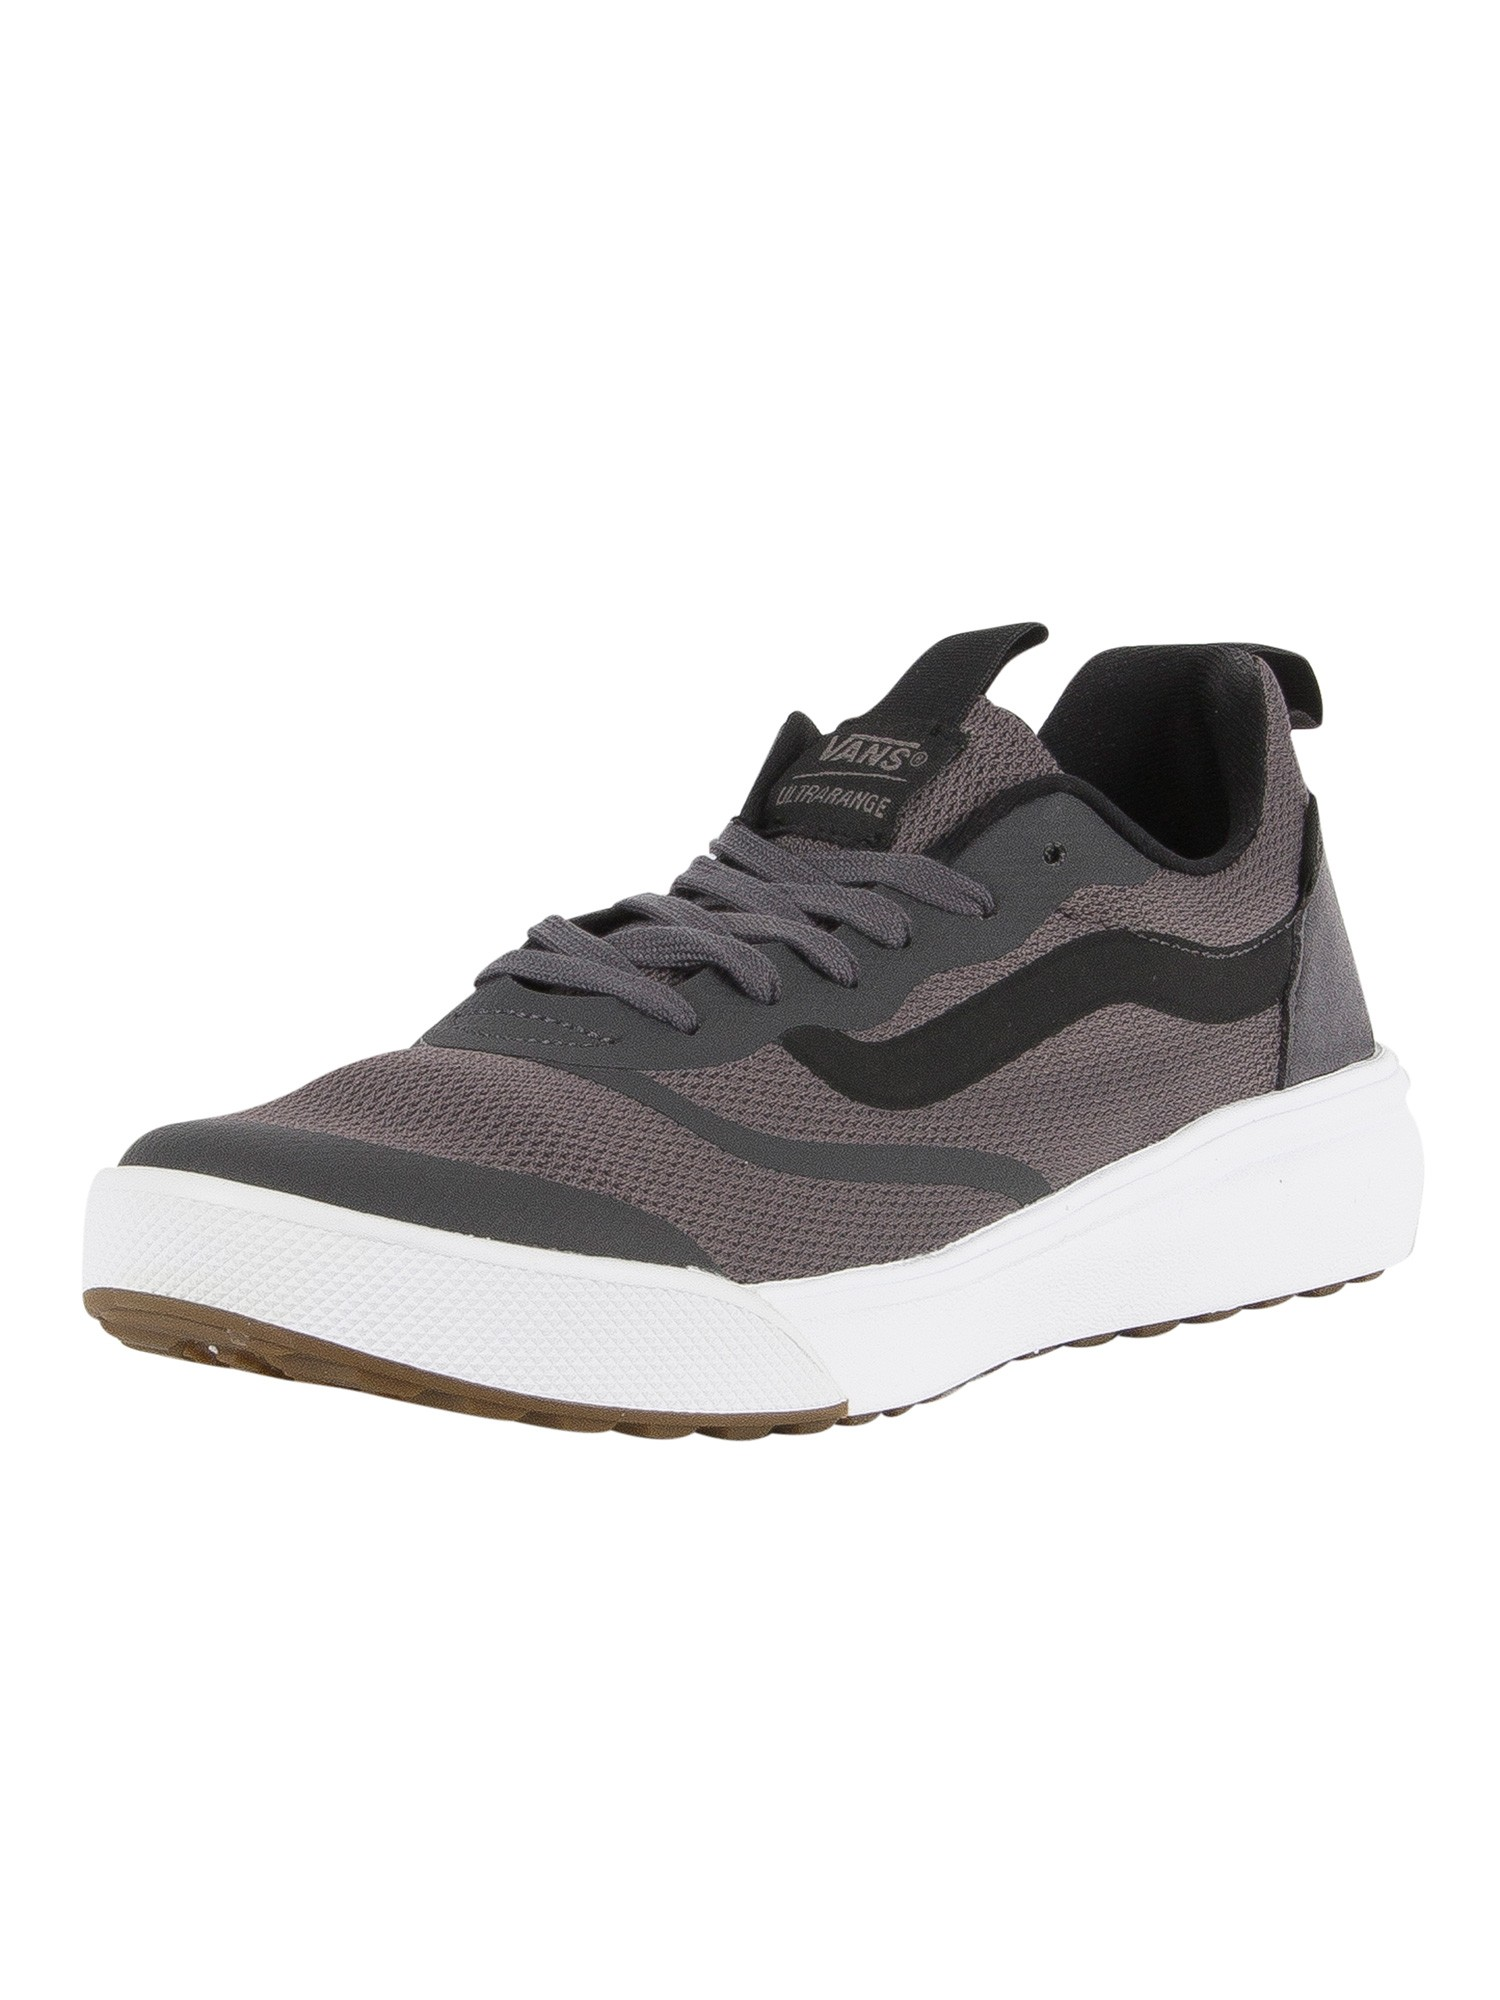 Vans Men's Ultra Range Rapidweld Trainers, Grey